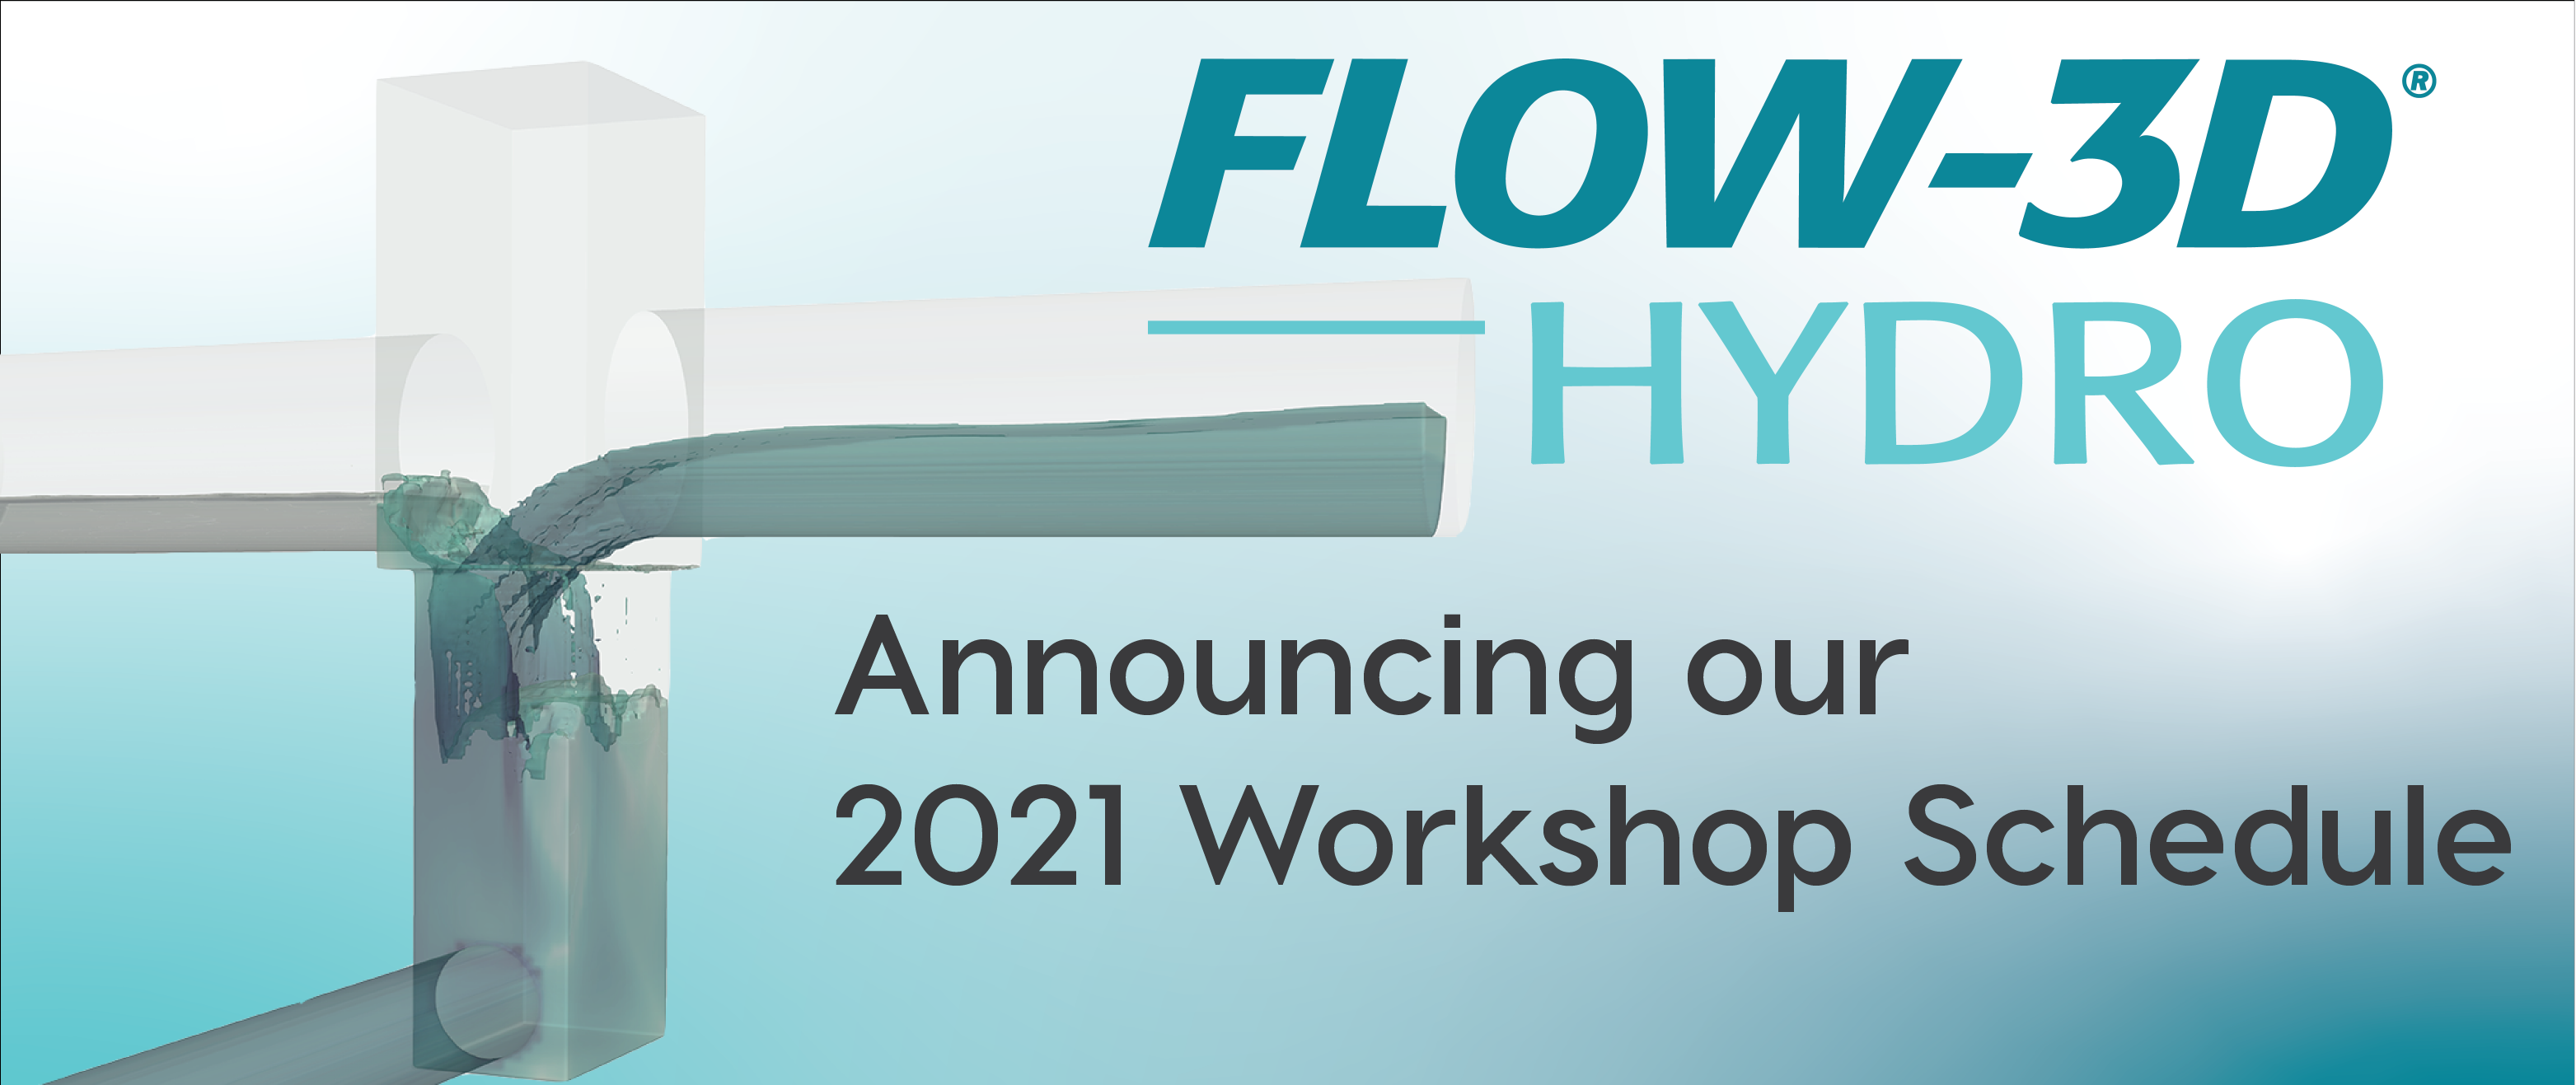 Announcing our 2021 FLOW-3D HYDRO workshop schedule